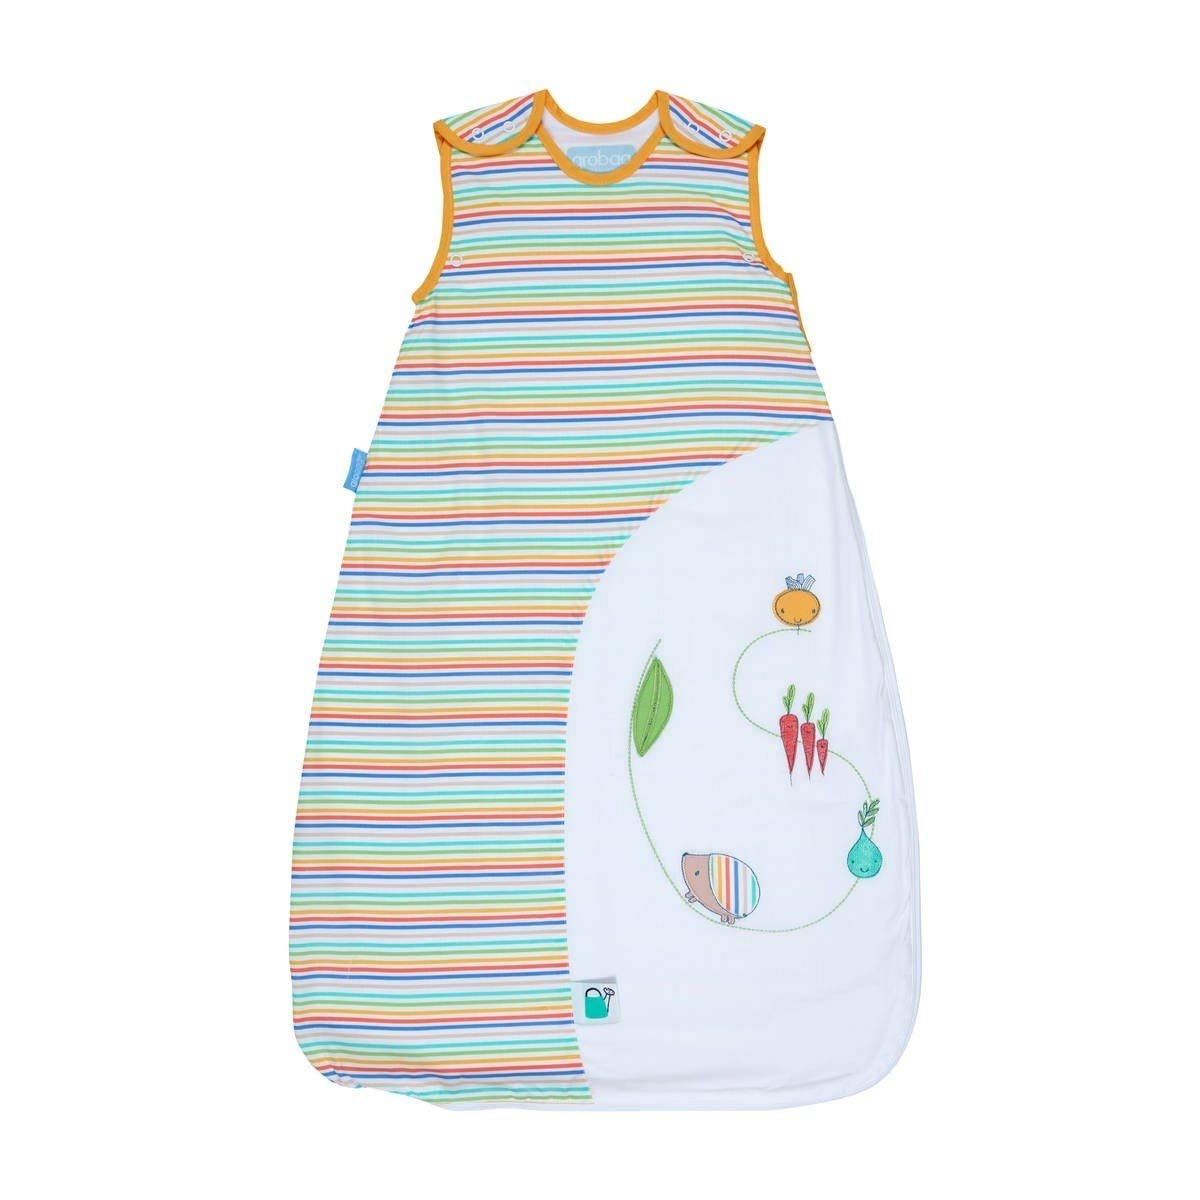 The Gro Company Grow Your Own Grobag, 0-6 Months, 1 Tog AAA5283